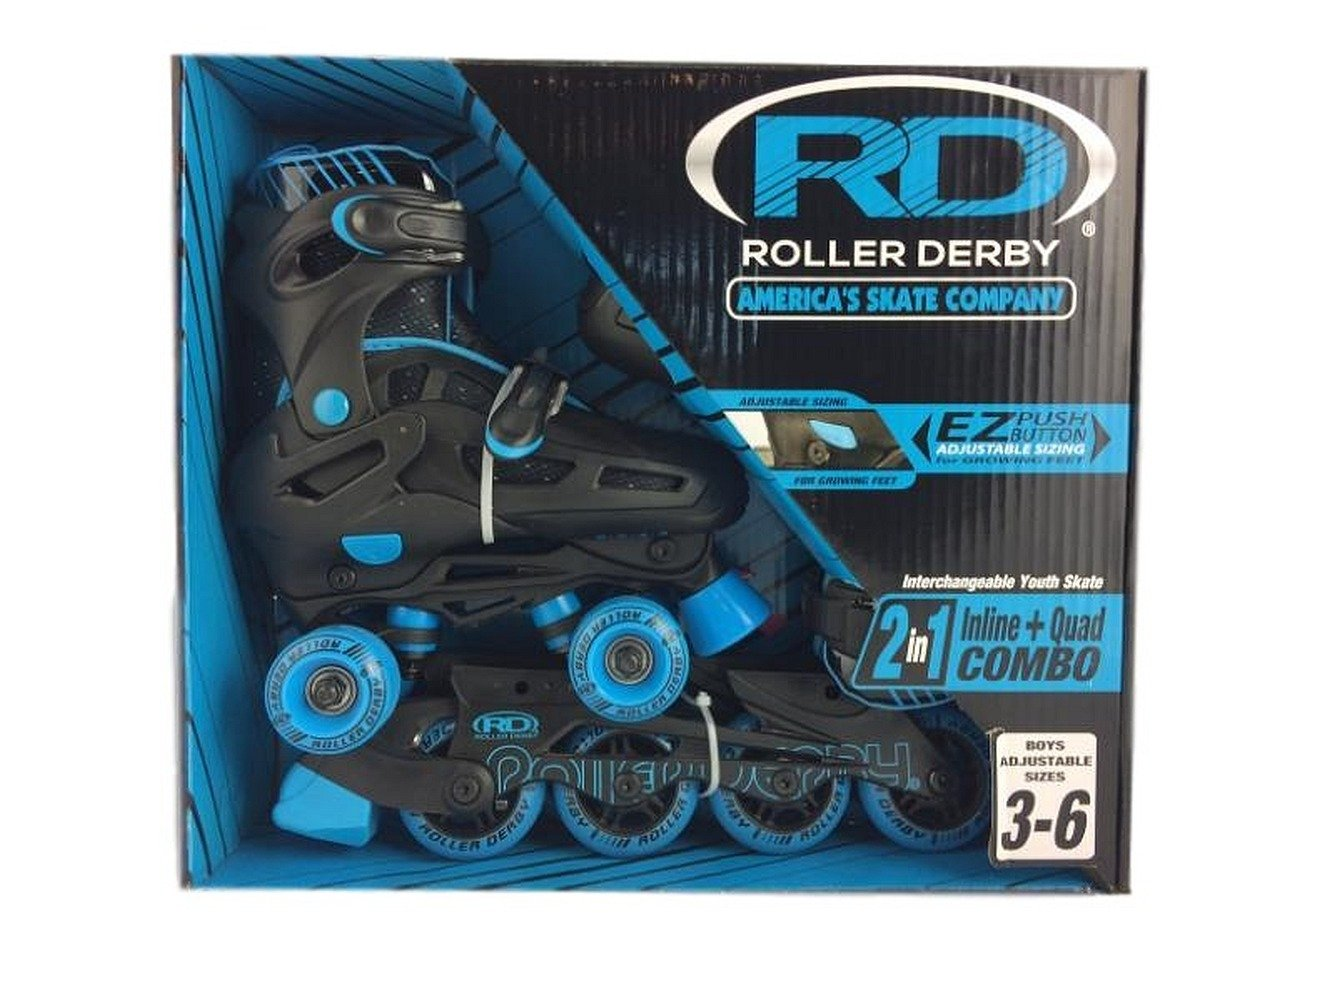 Roller Derby 2n1 Inline and Quad Skate Boys Adjustable Size 3-6